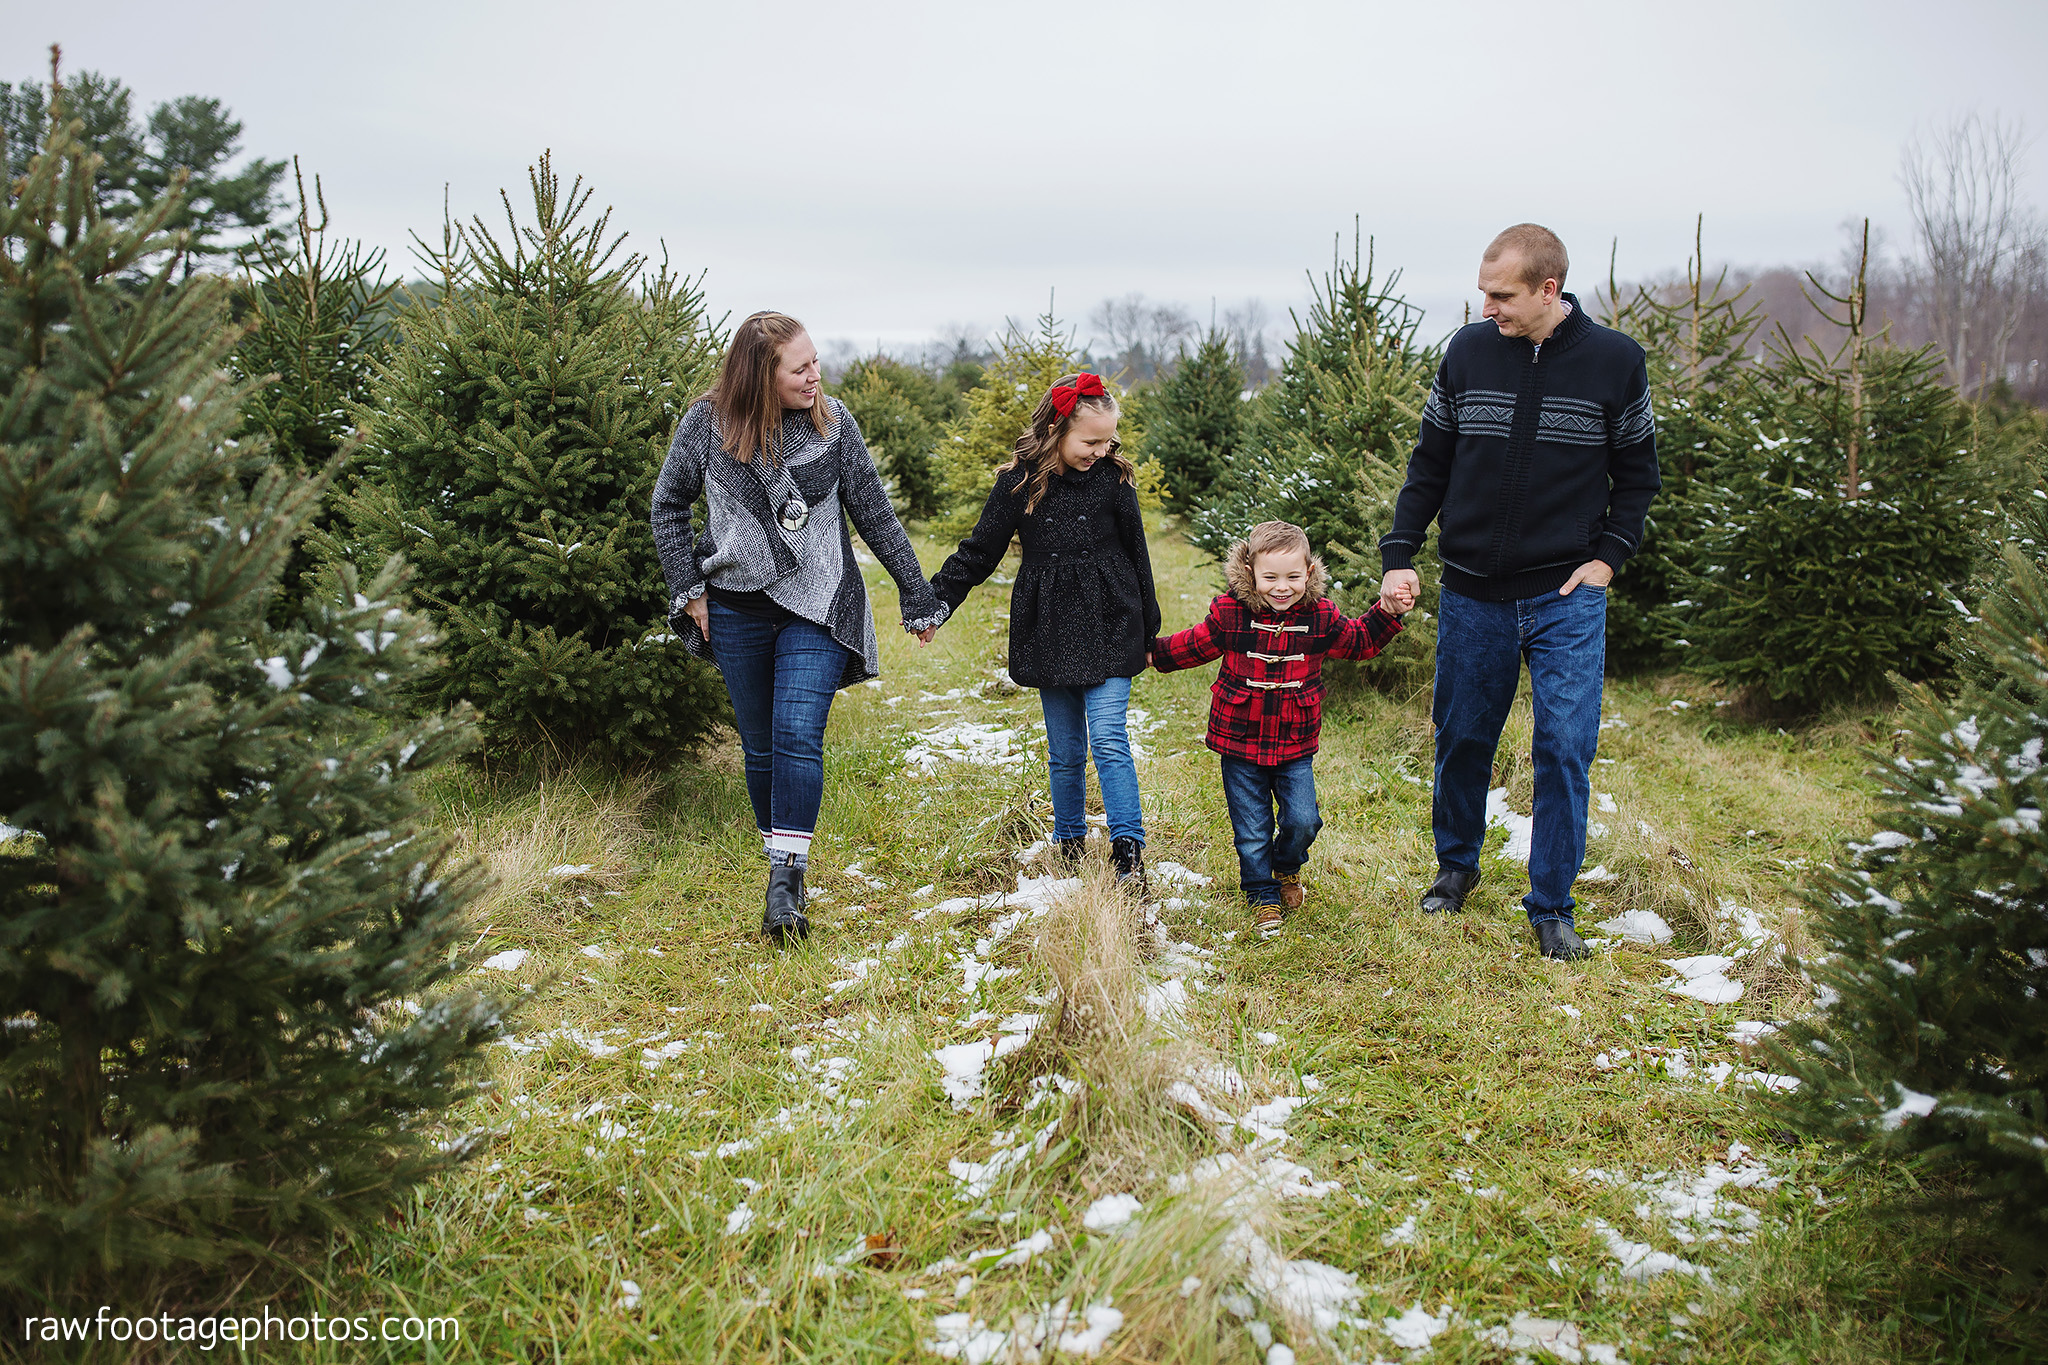 london_ontario_family_photographer-raw_footage_photography-tree_farm_minis-christmas_sessions-winter0026.jpg